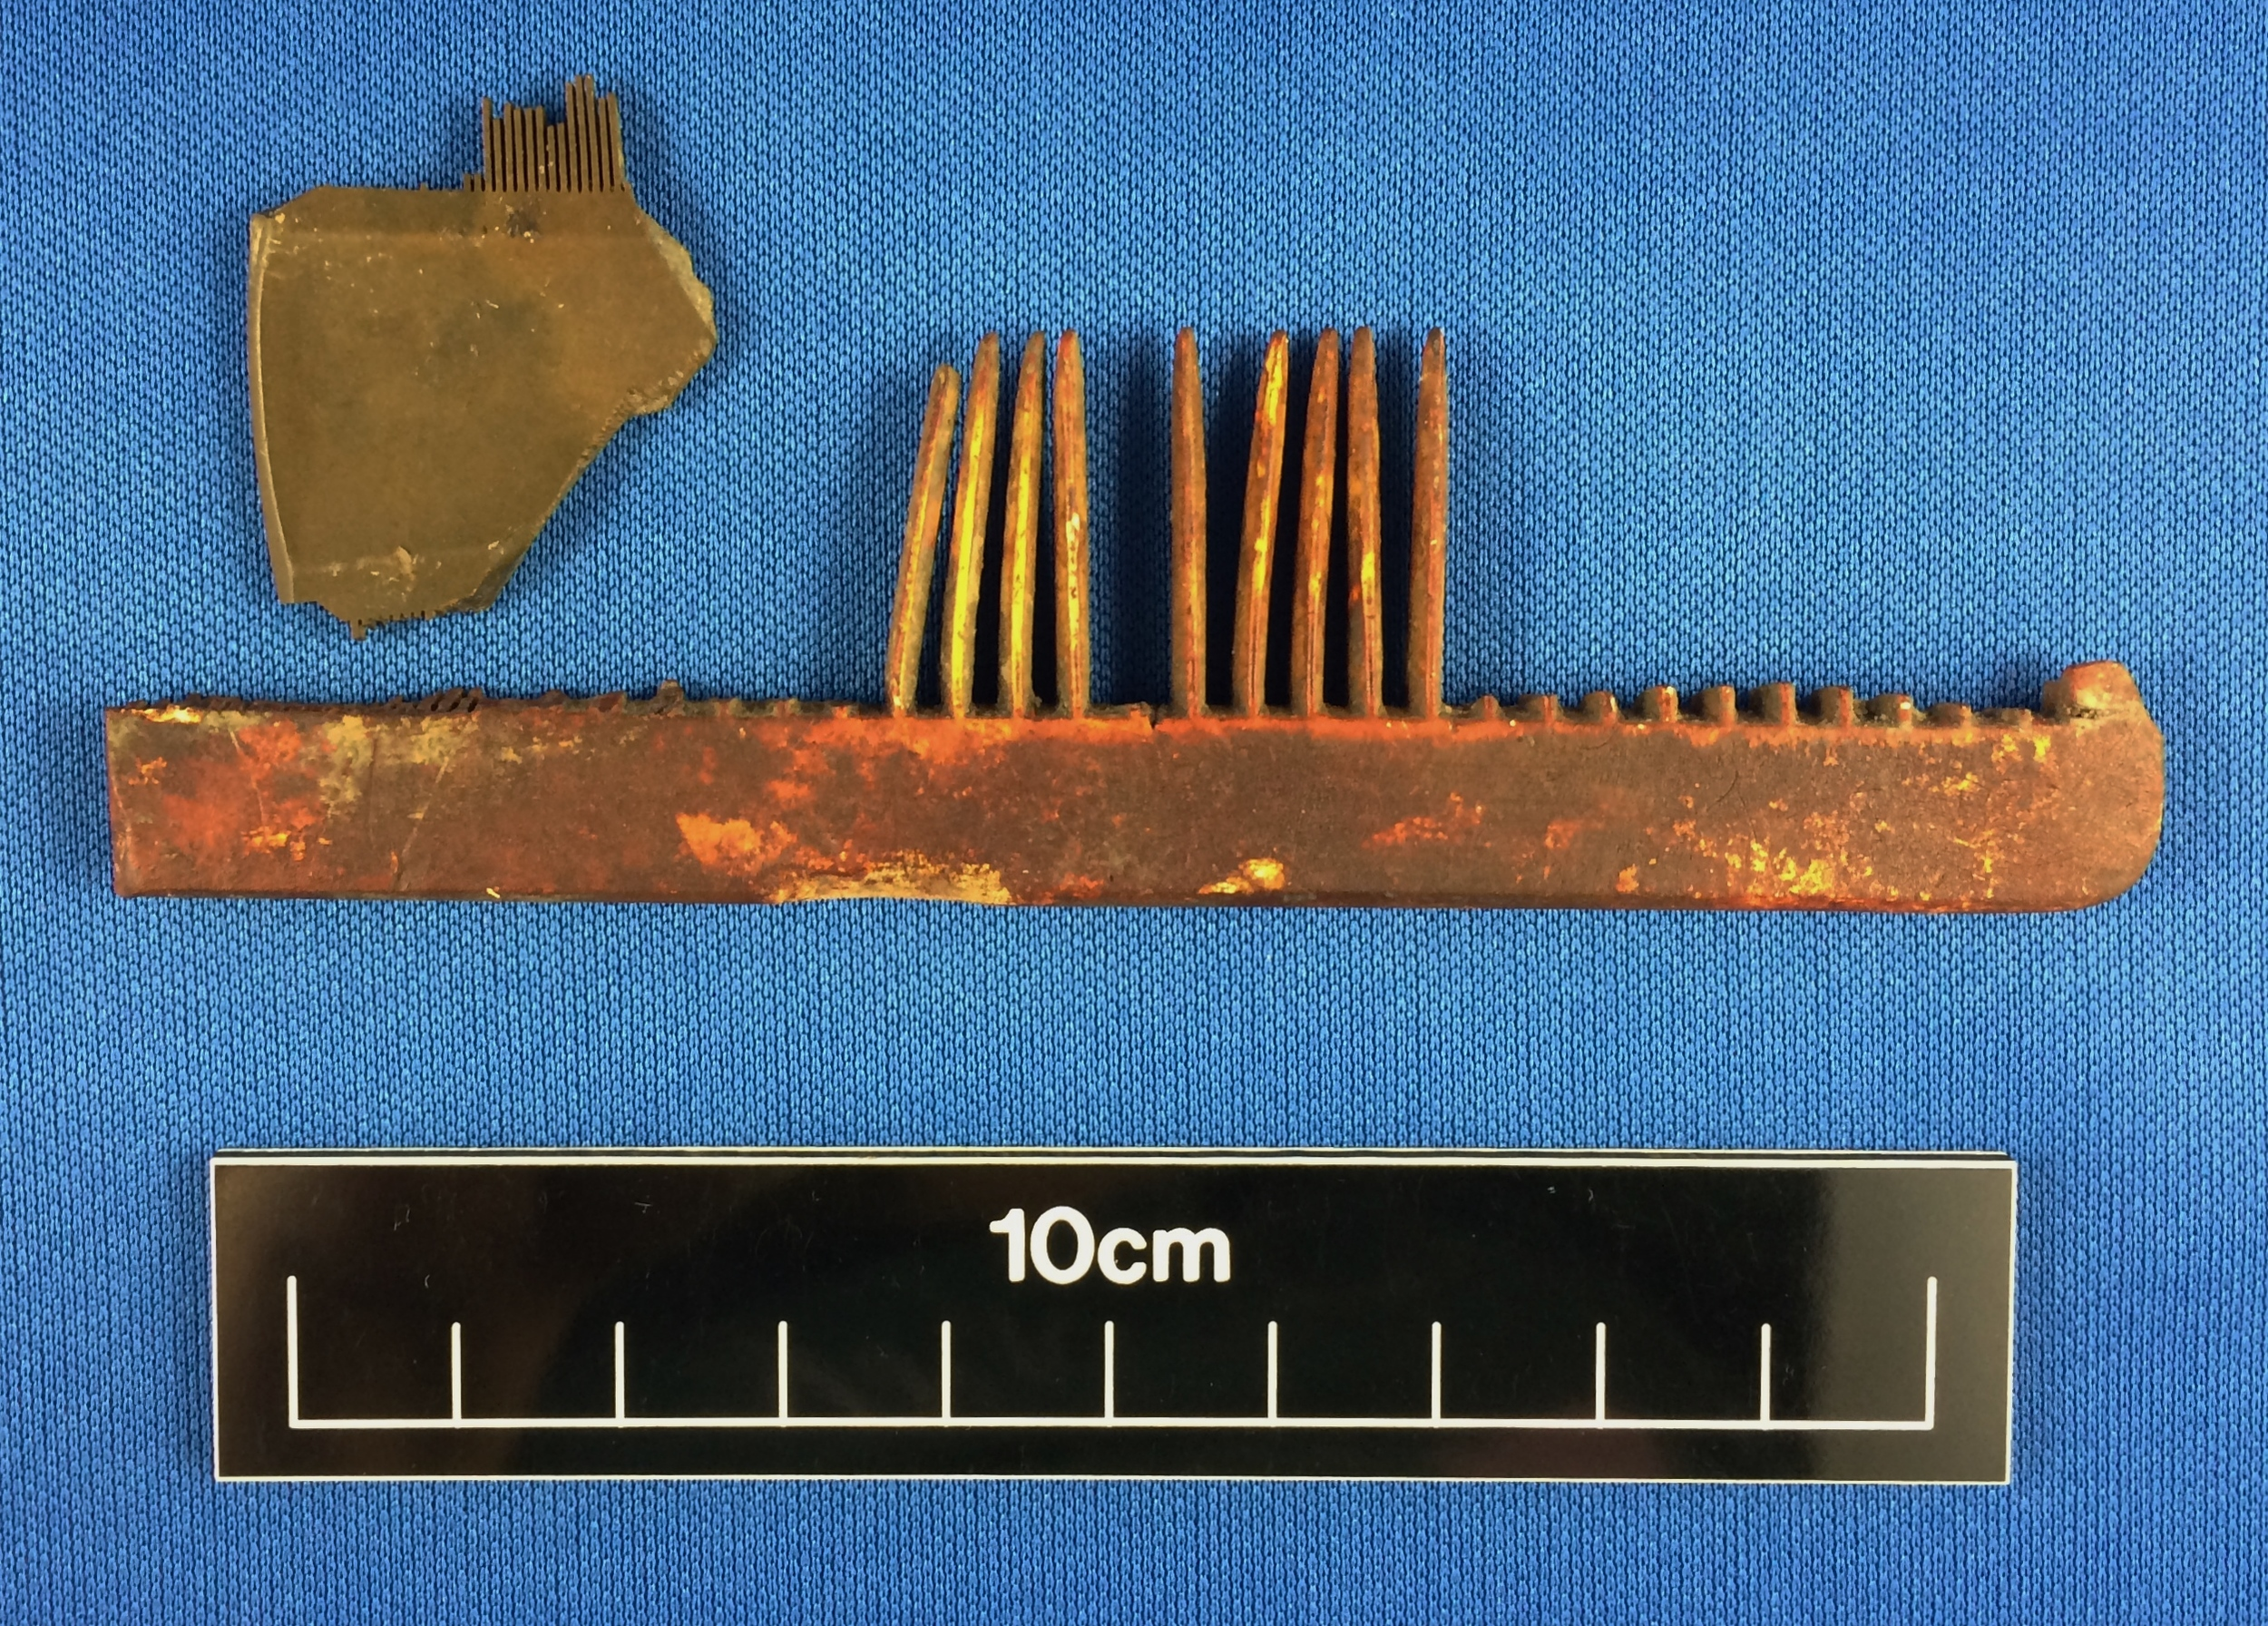 Combs from the Cottage Hospital